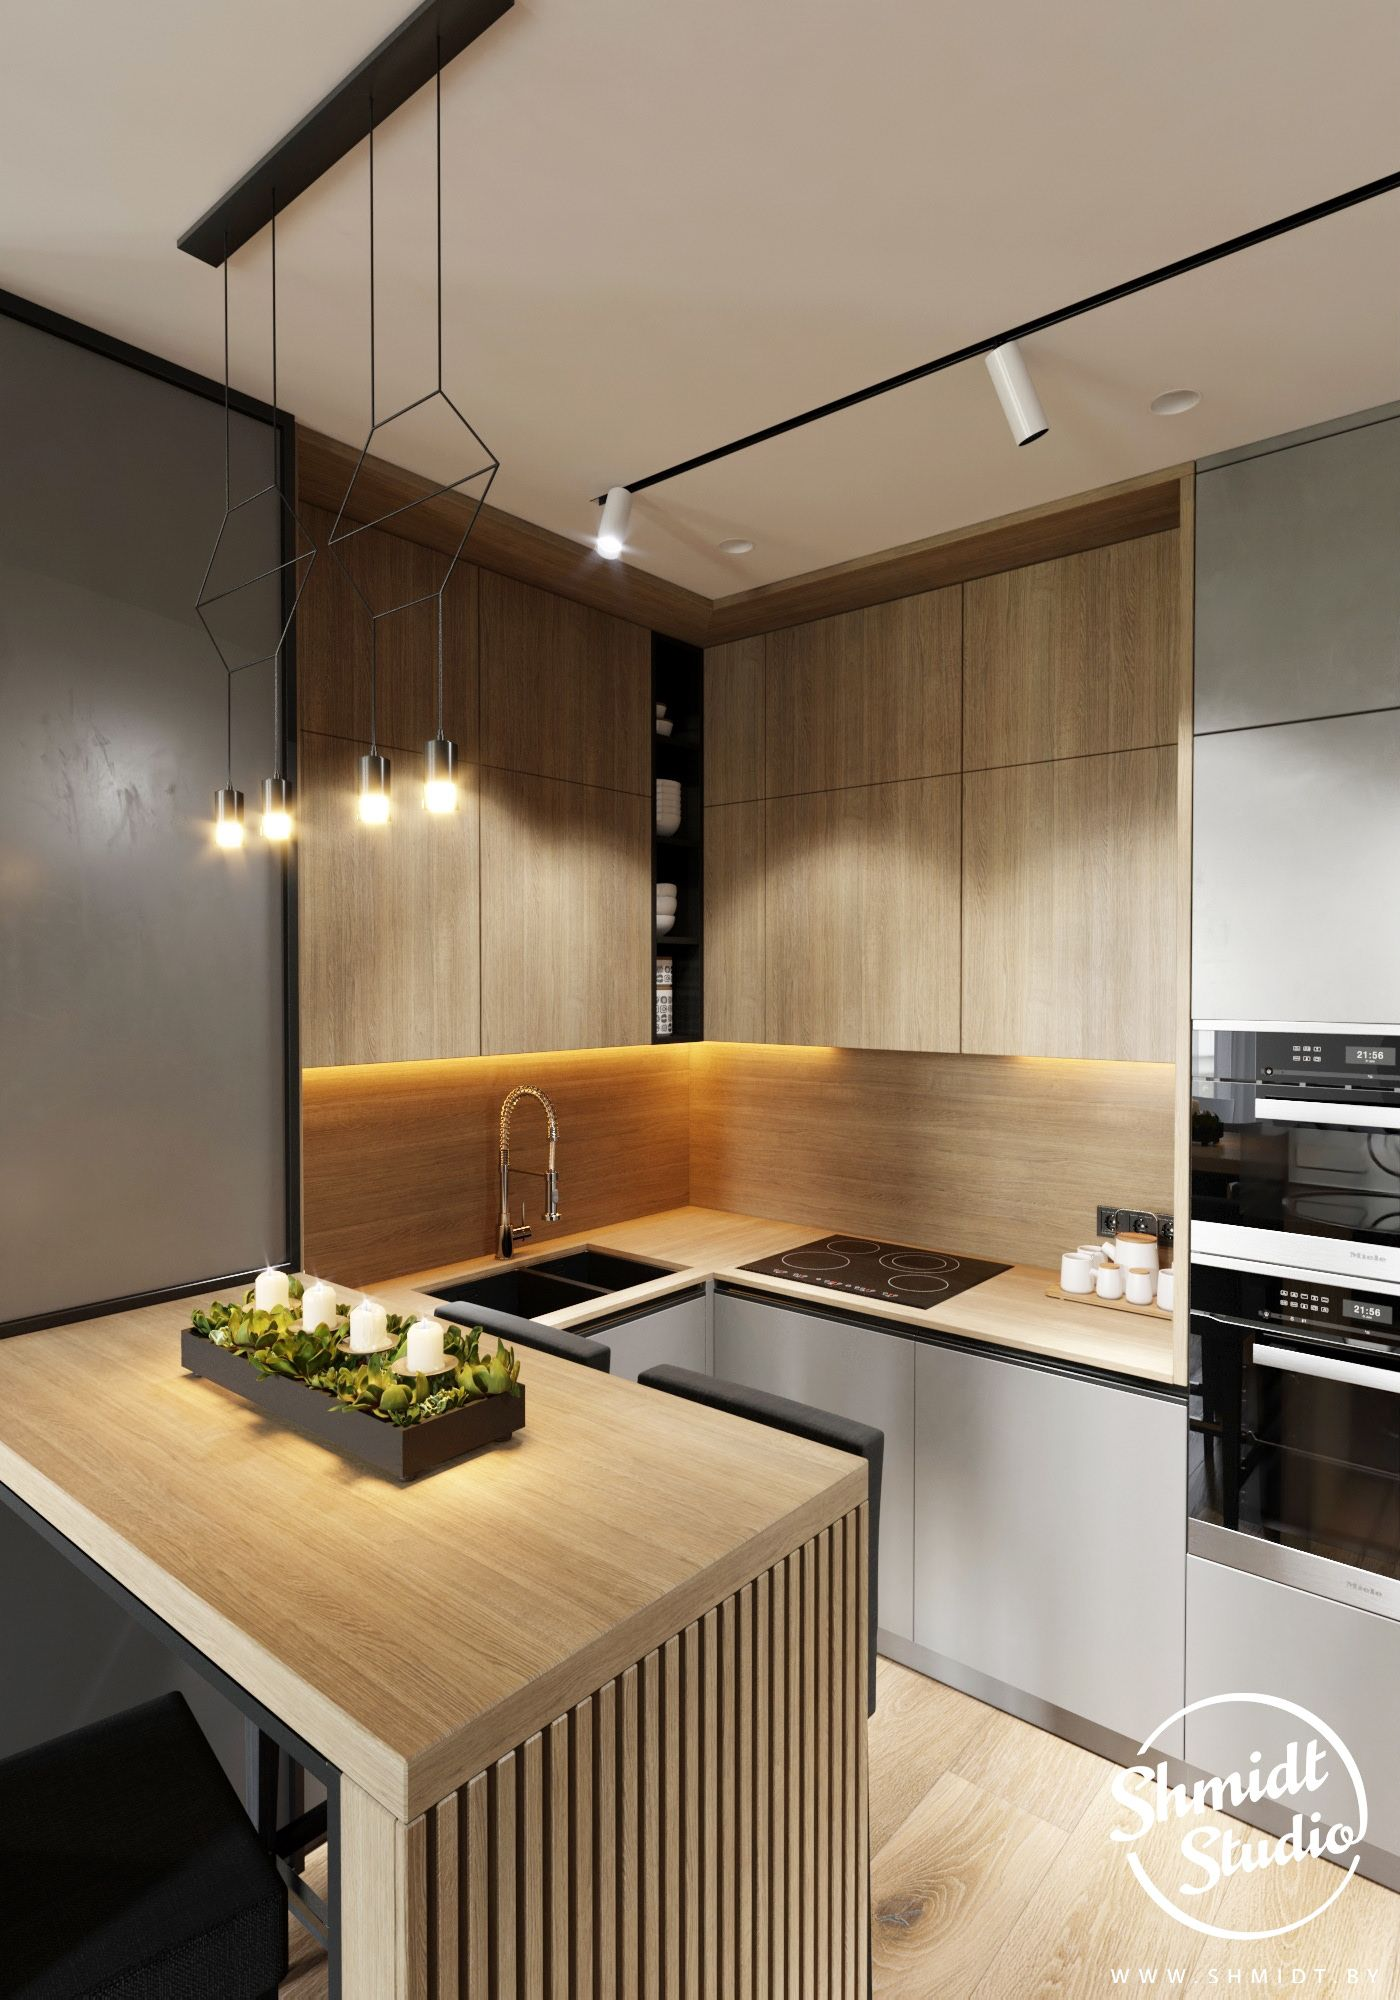 Great 20 Modern Kitchen Design Ideas you Can Try in your Dream ...